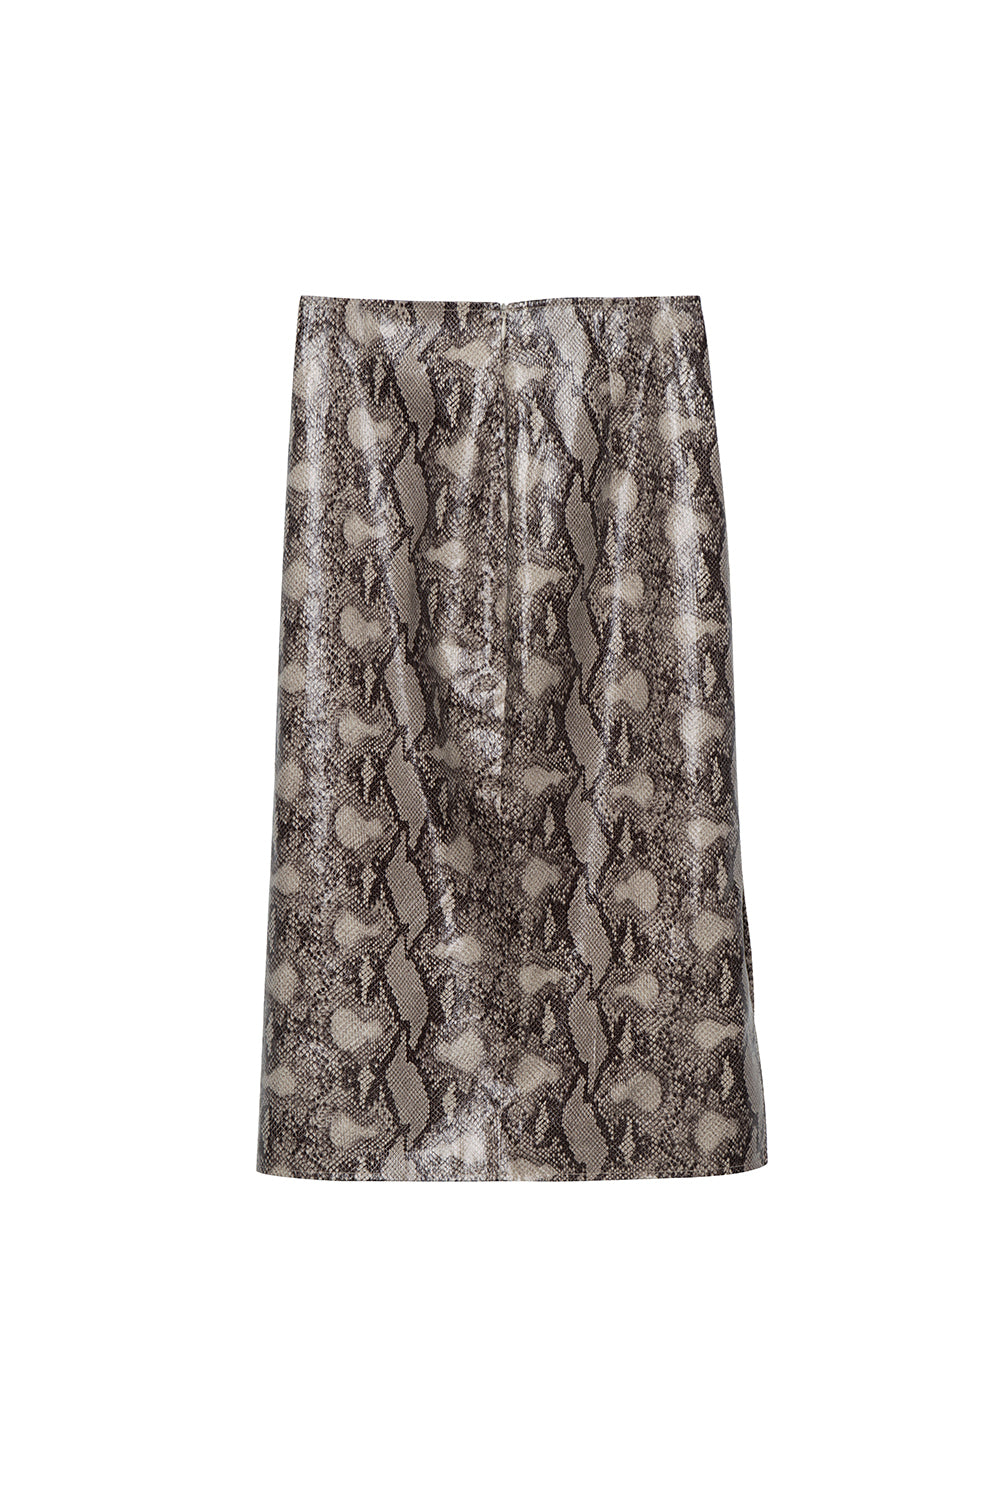 Snakeskin Print Faux Leather Midi Skirt